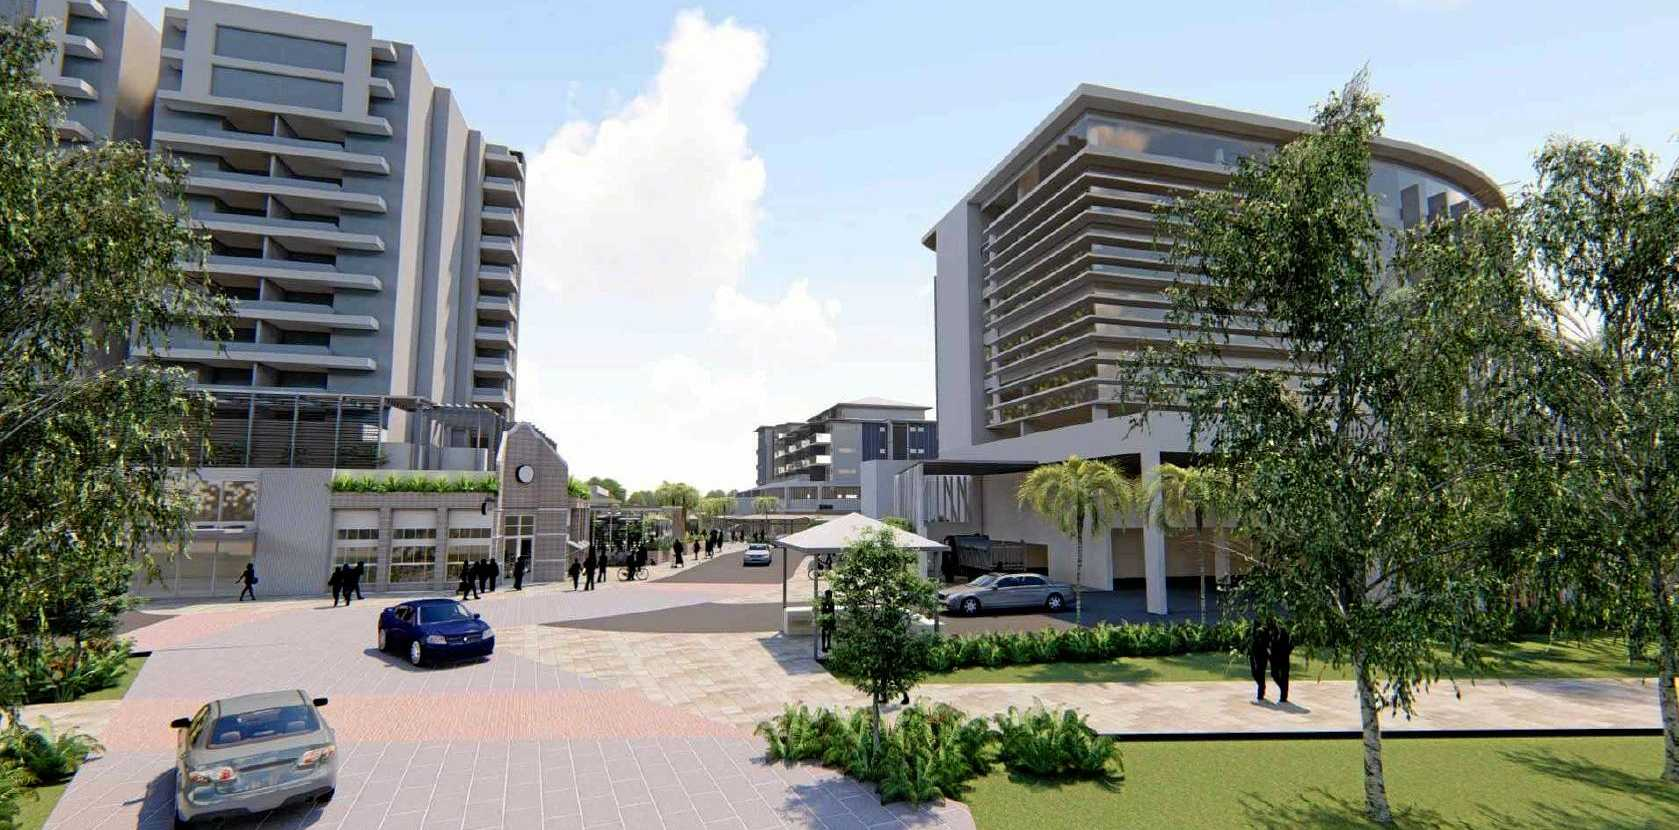 BUILDING BOOST: Concept designs of an eight-storey building proposed for Pialba. Business owners welcome the development.